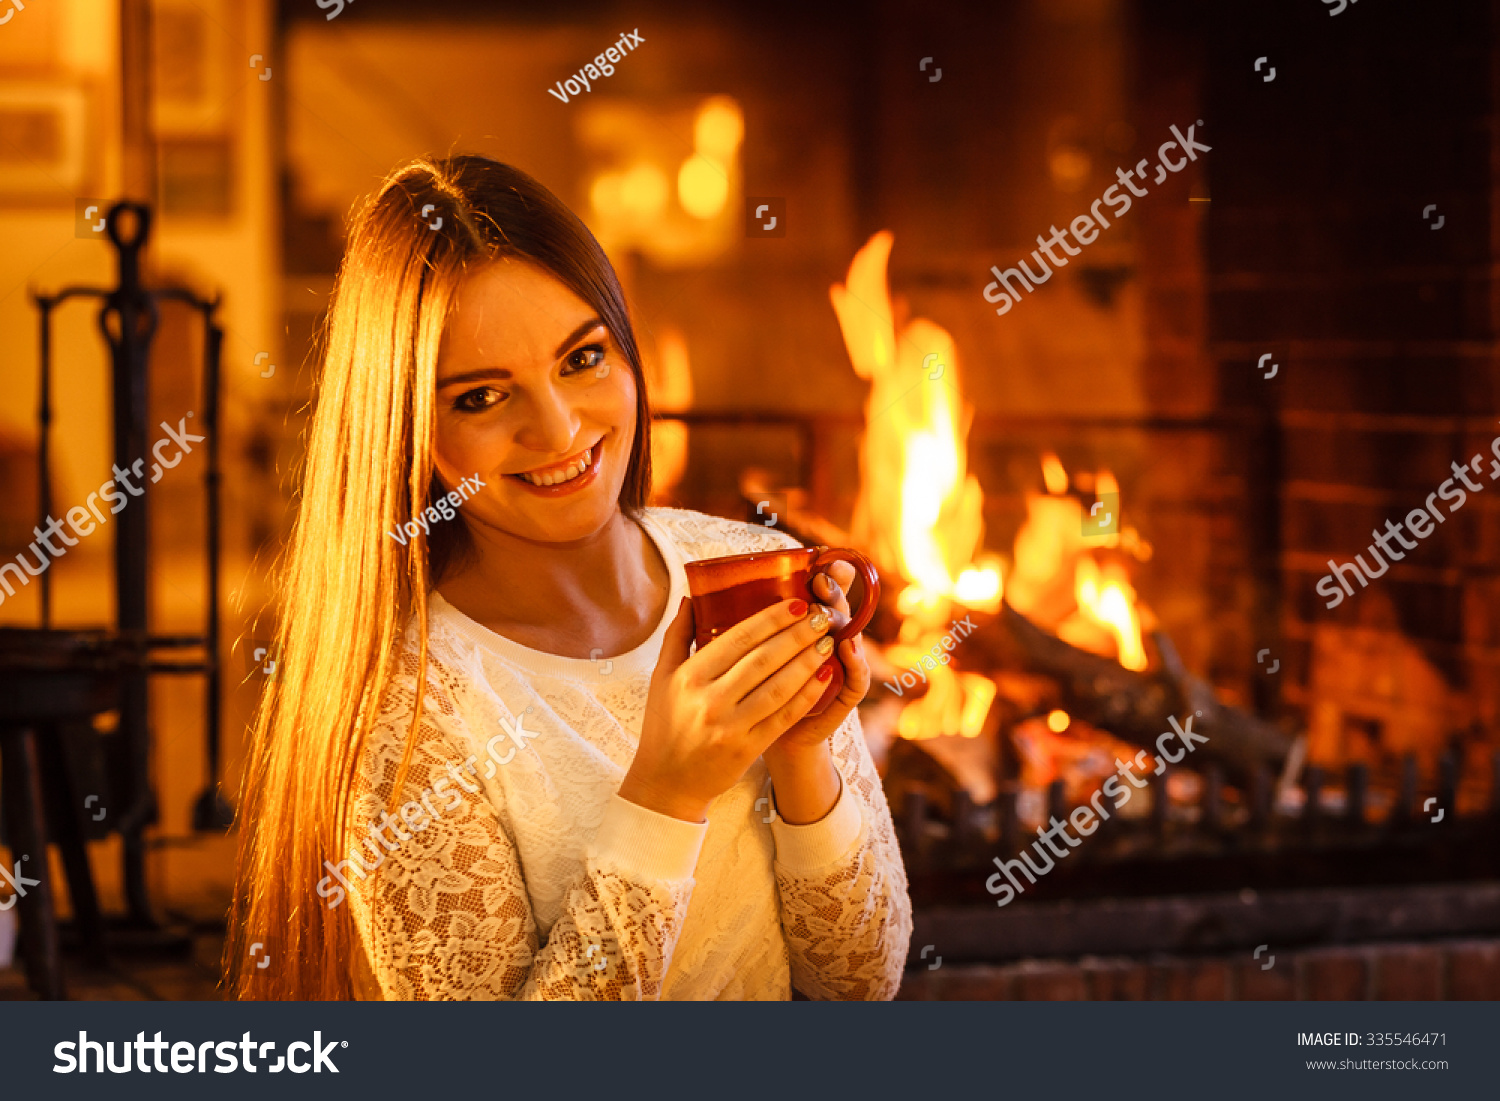 woman drinking cup coffee relaxing fireplace stock photo 335546471